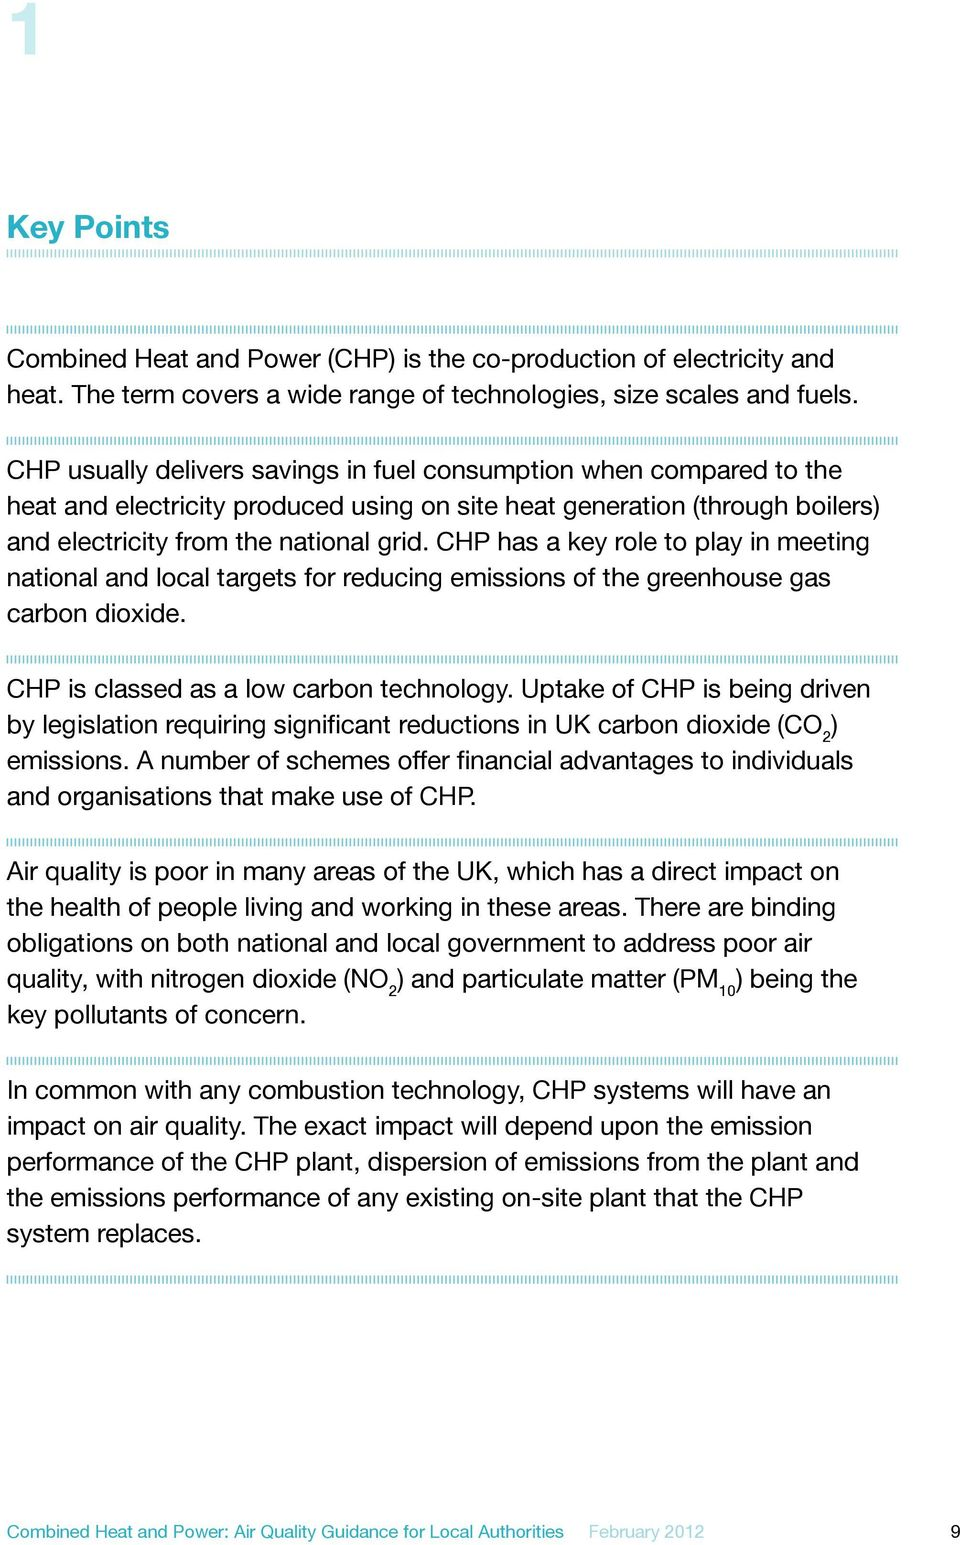 CHP has a key role to play in meeting national and local targets for reducing emissions of the greenhouse gas carbon dioxide. CHP is classed as a low carbon technology.